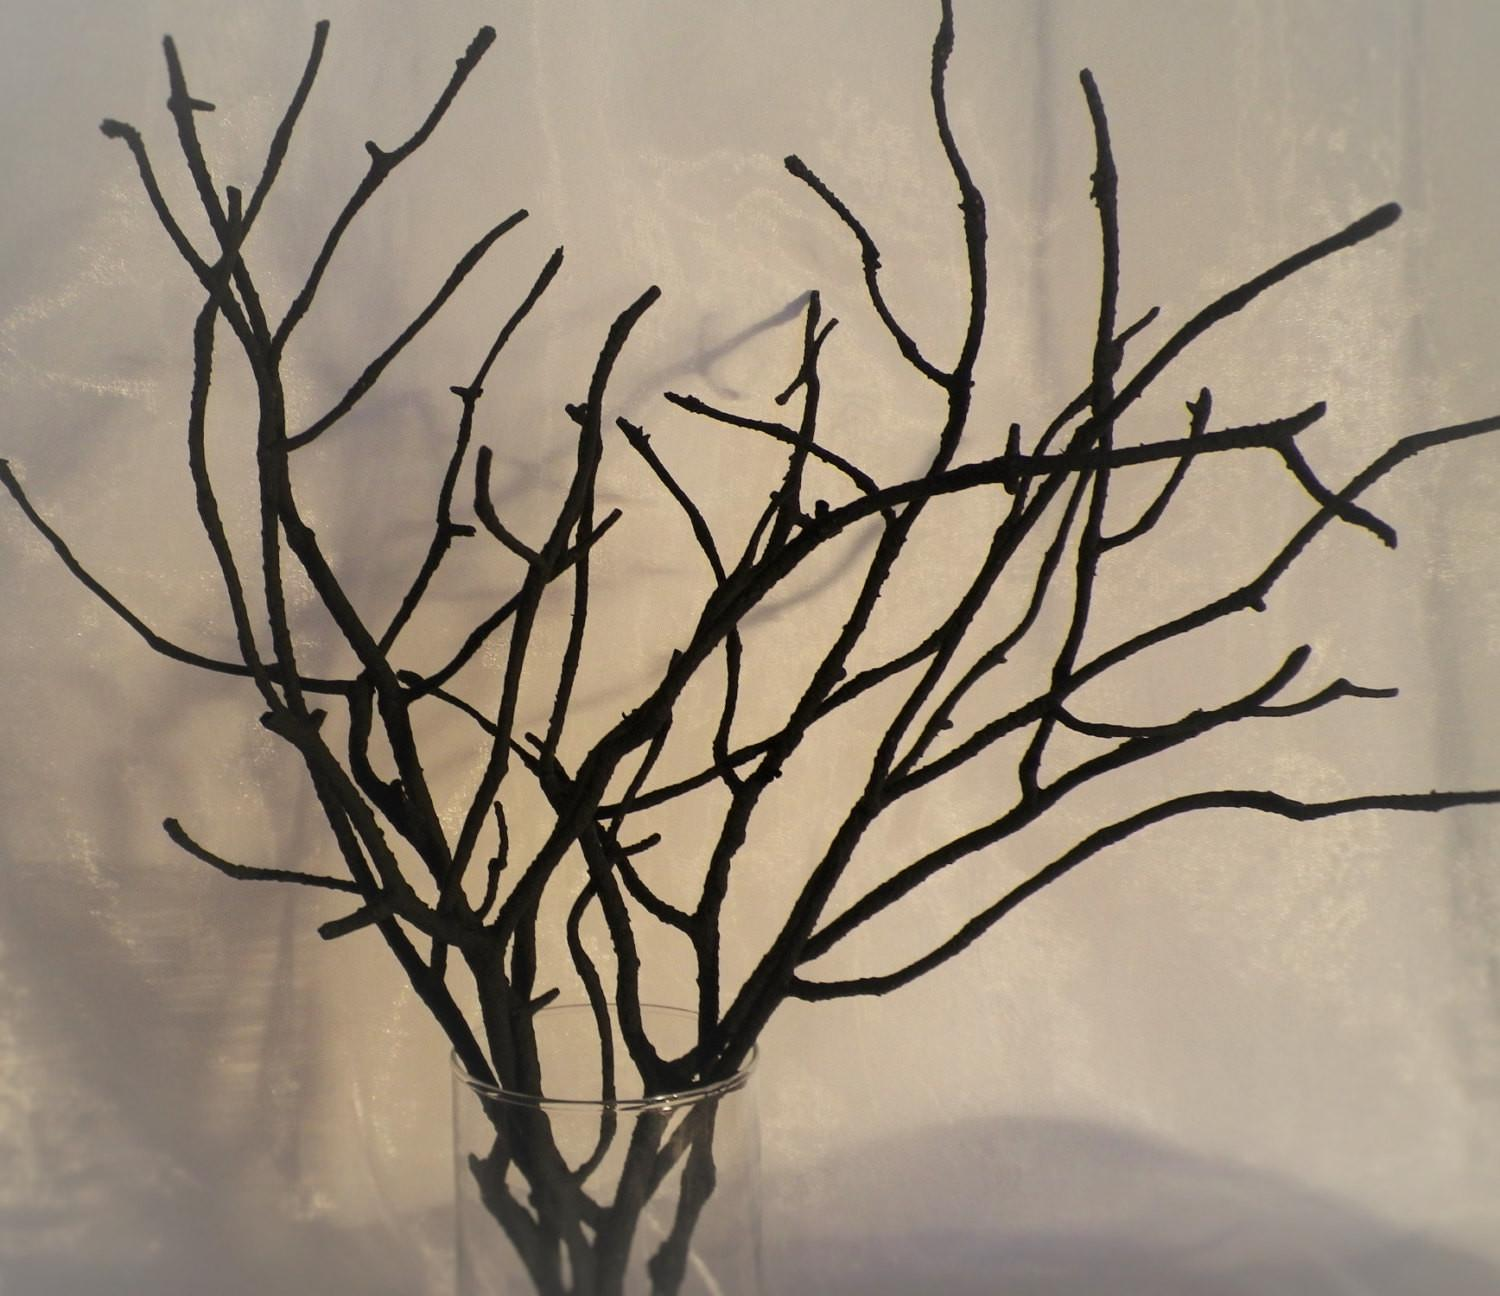 Tree Branches Set Black Painted Wood Ligitasworkshop